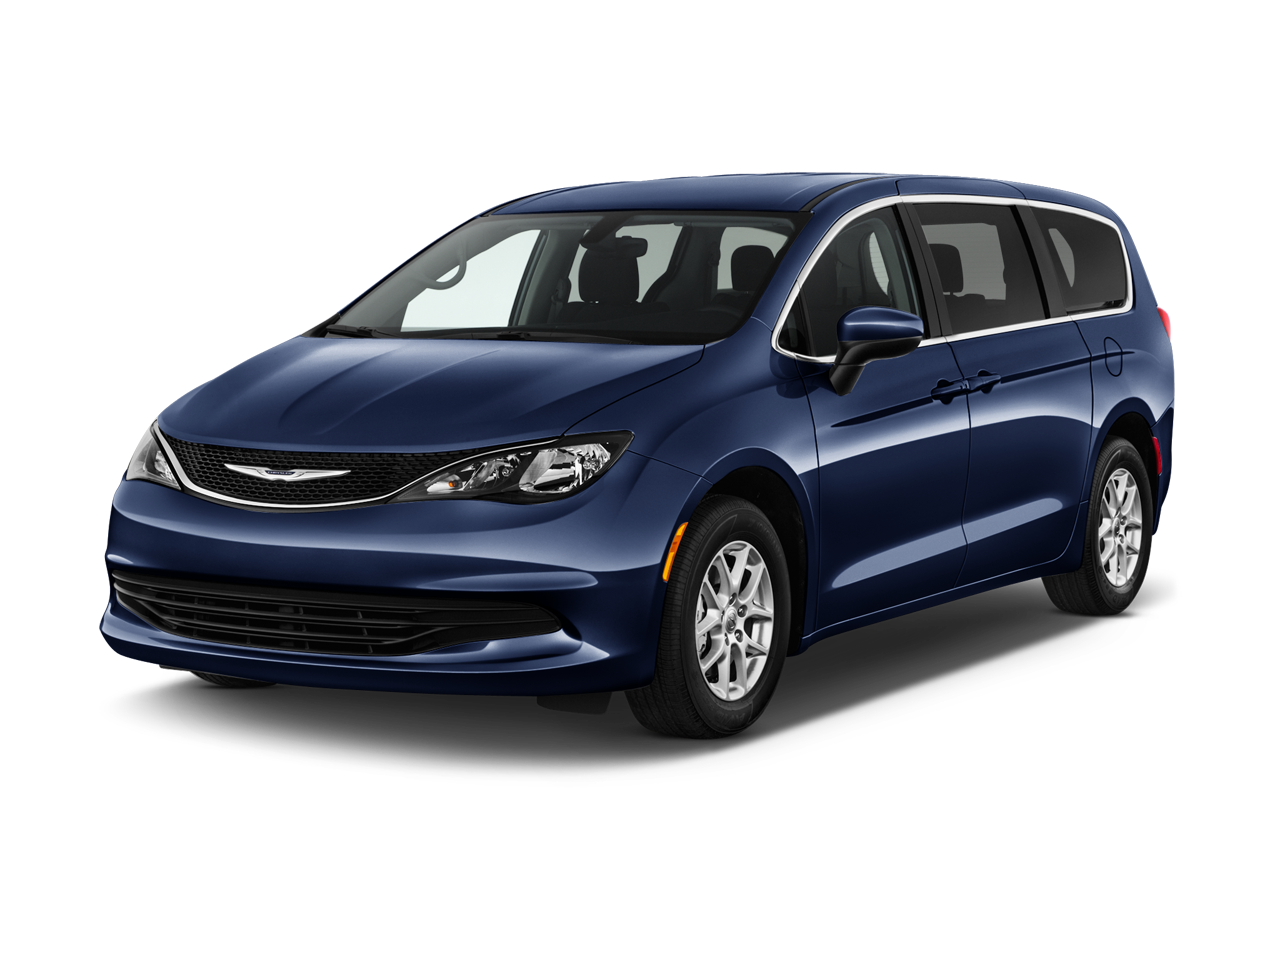 chrysler pacifica mileage new 2017 chrysler pacifica. Black Bedroom Furniture Sets. Home Design Ideas